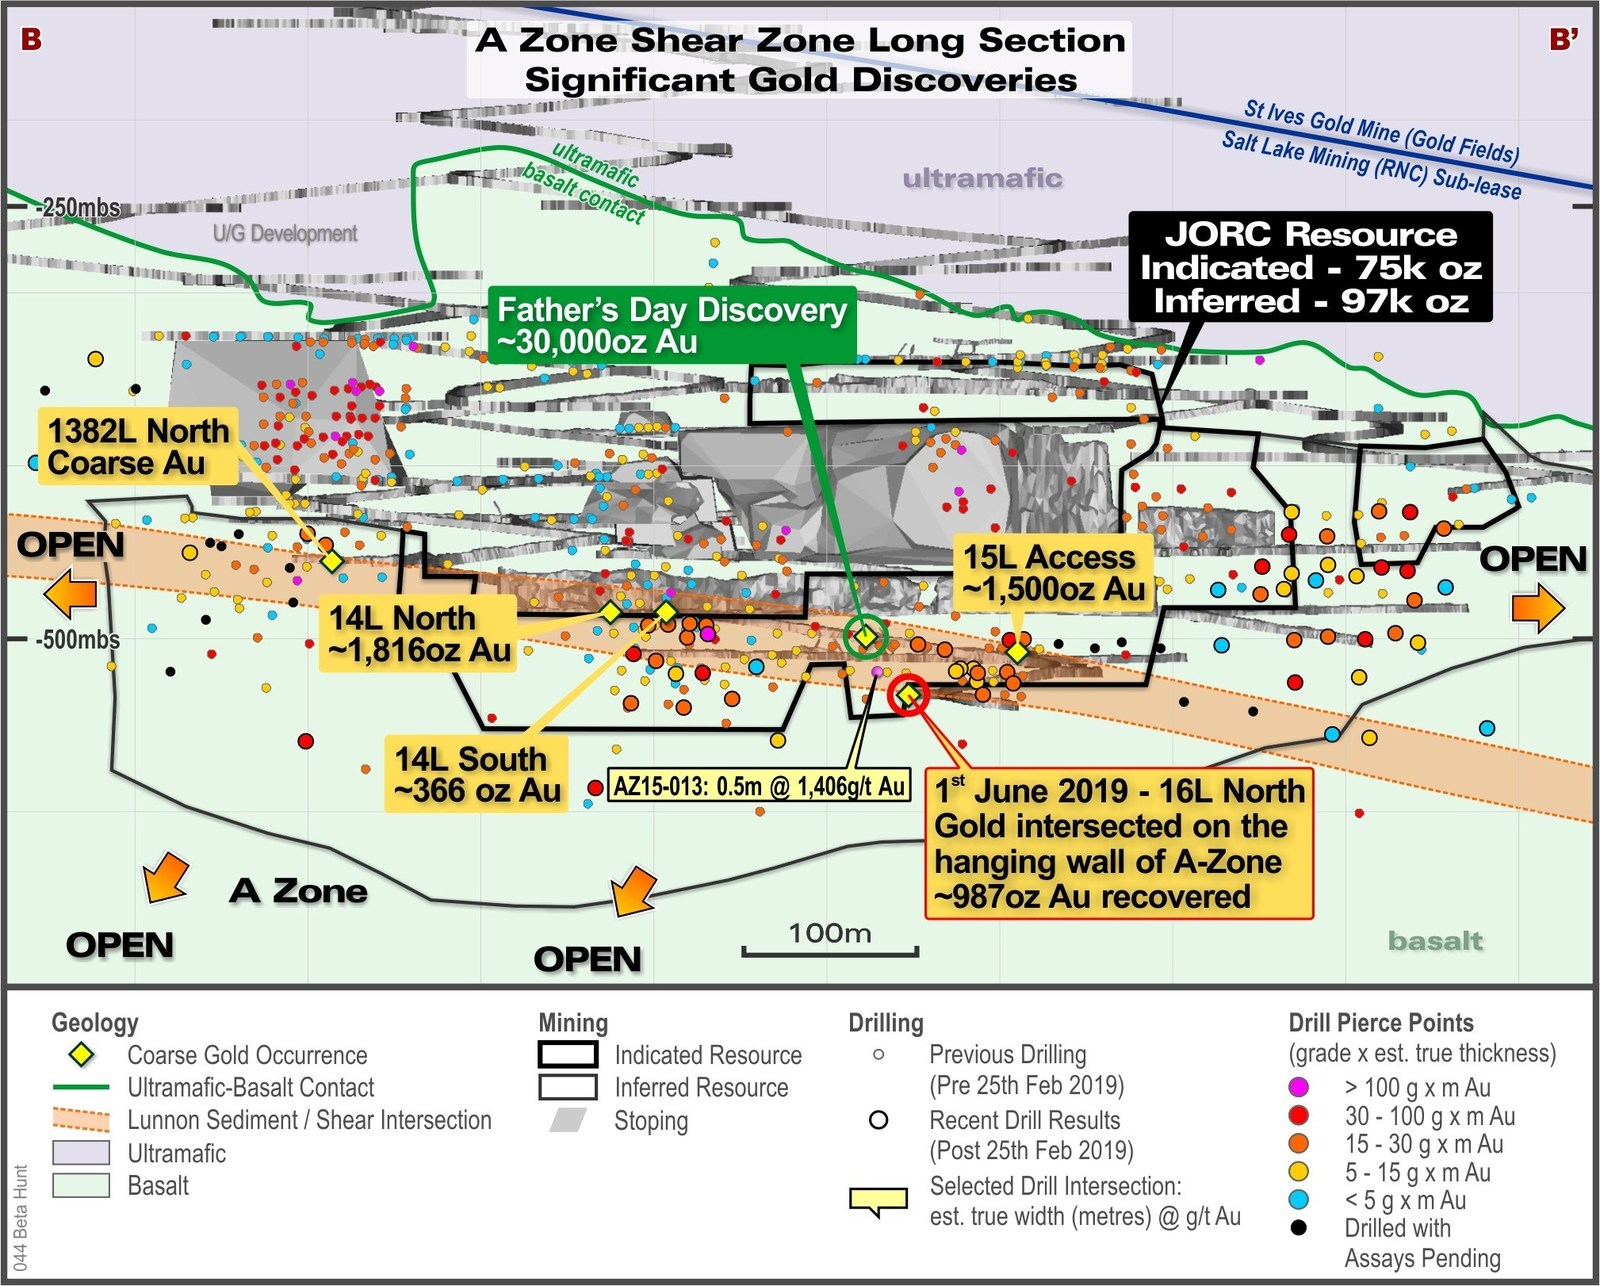 Figure 3: A Zone Long Section Looking East showing locations of coarse gold occurrences